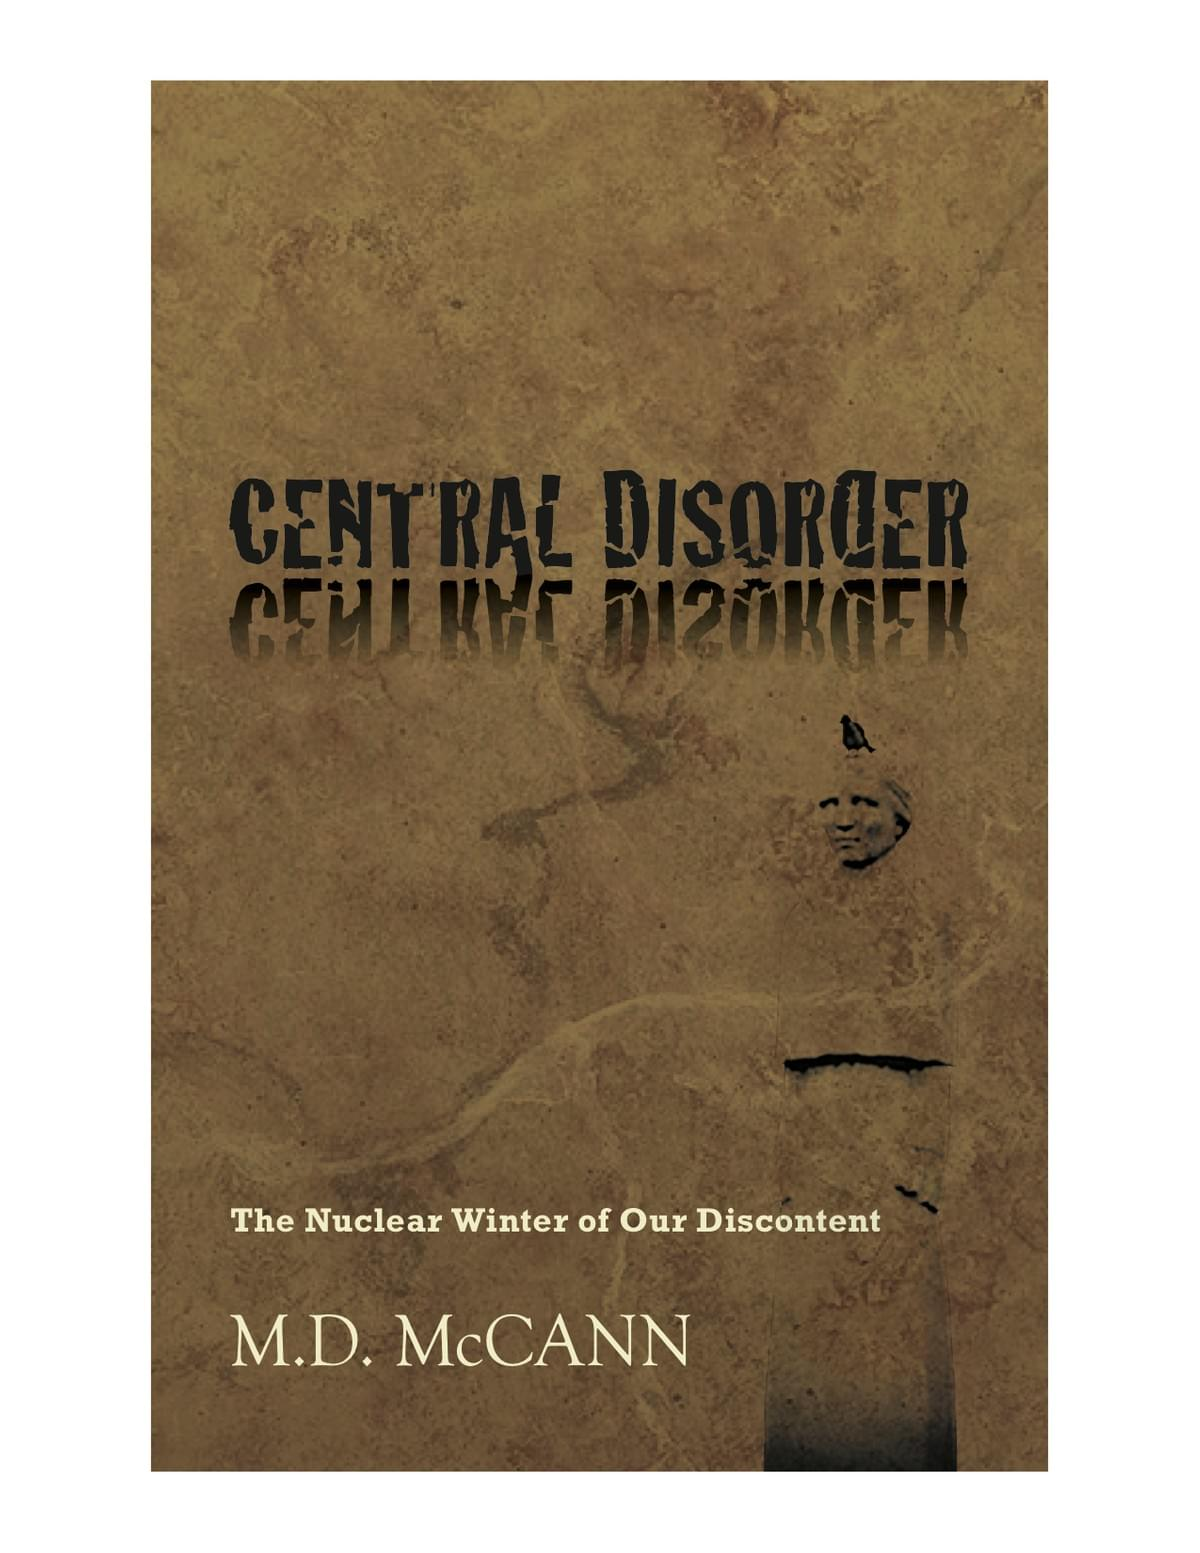 Central Disorder by M.D. McCann  ON SALE NOW!